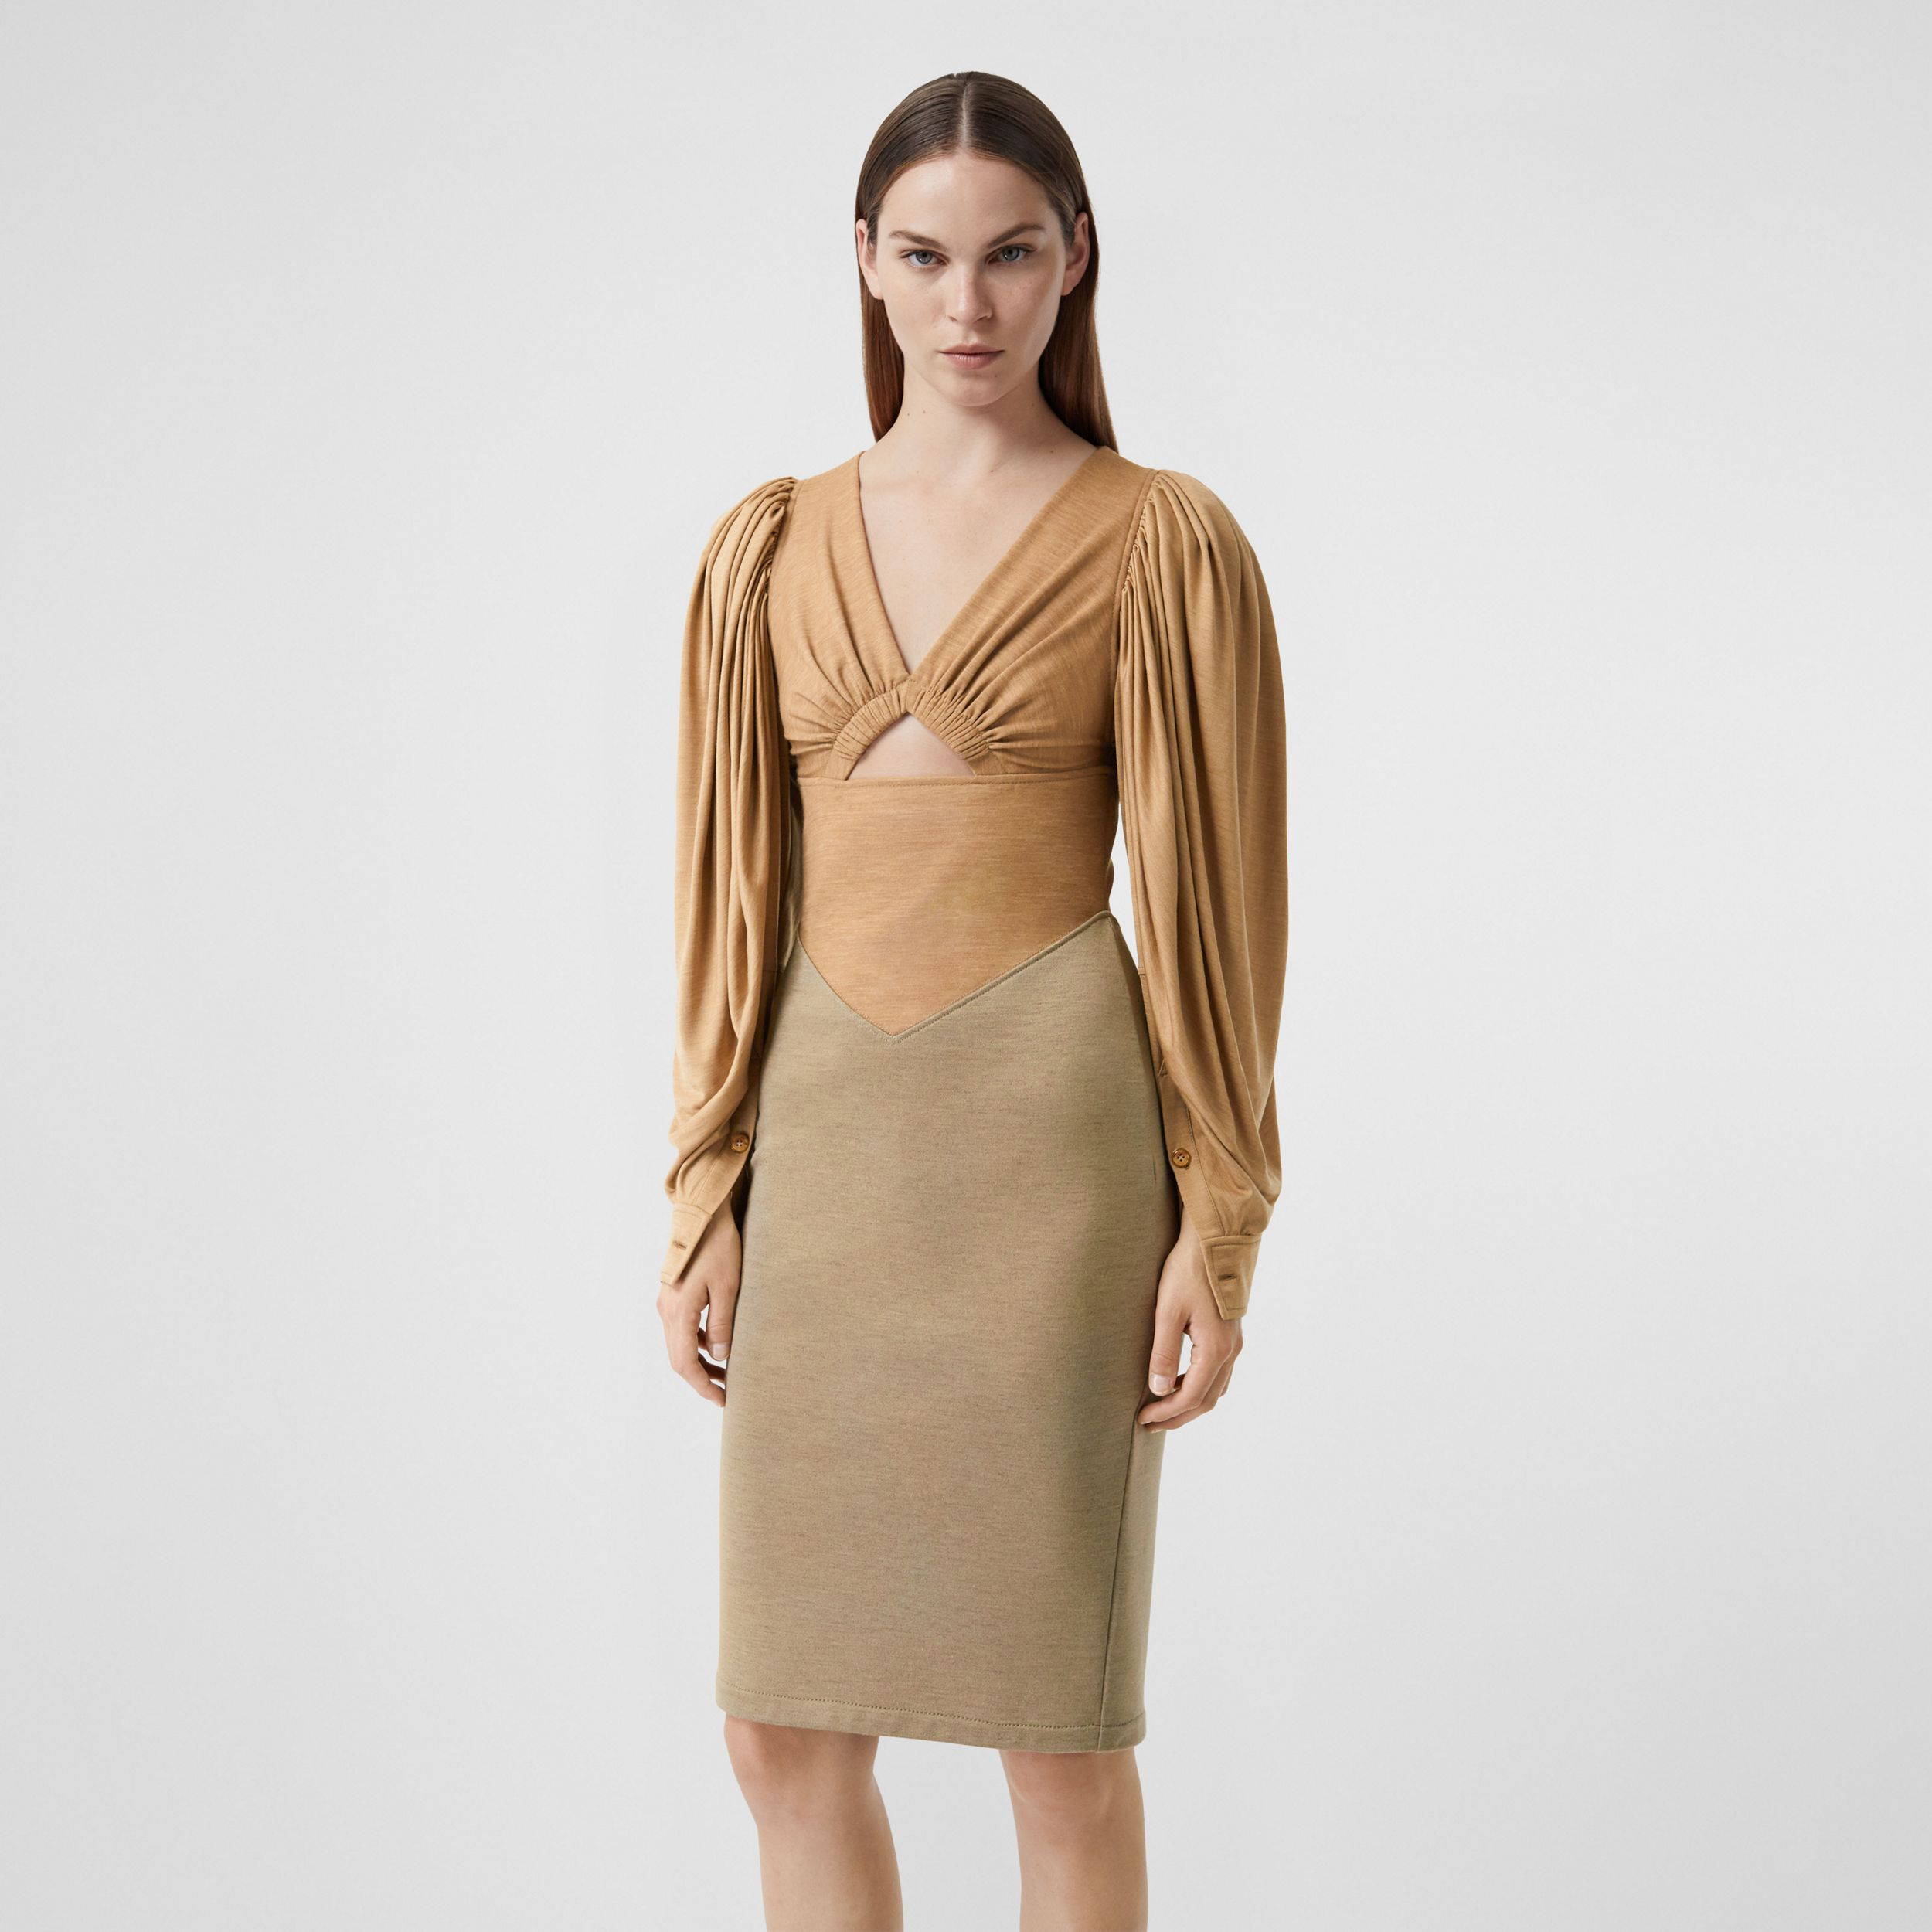 Panelled Wool Silk Jersey Dress in Pecan Melange - Women | Burberry - 4